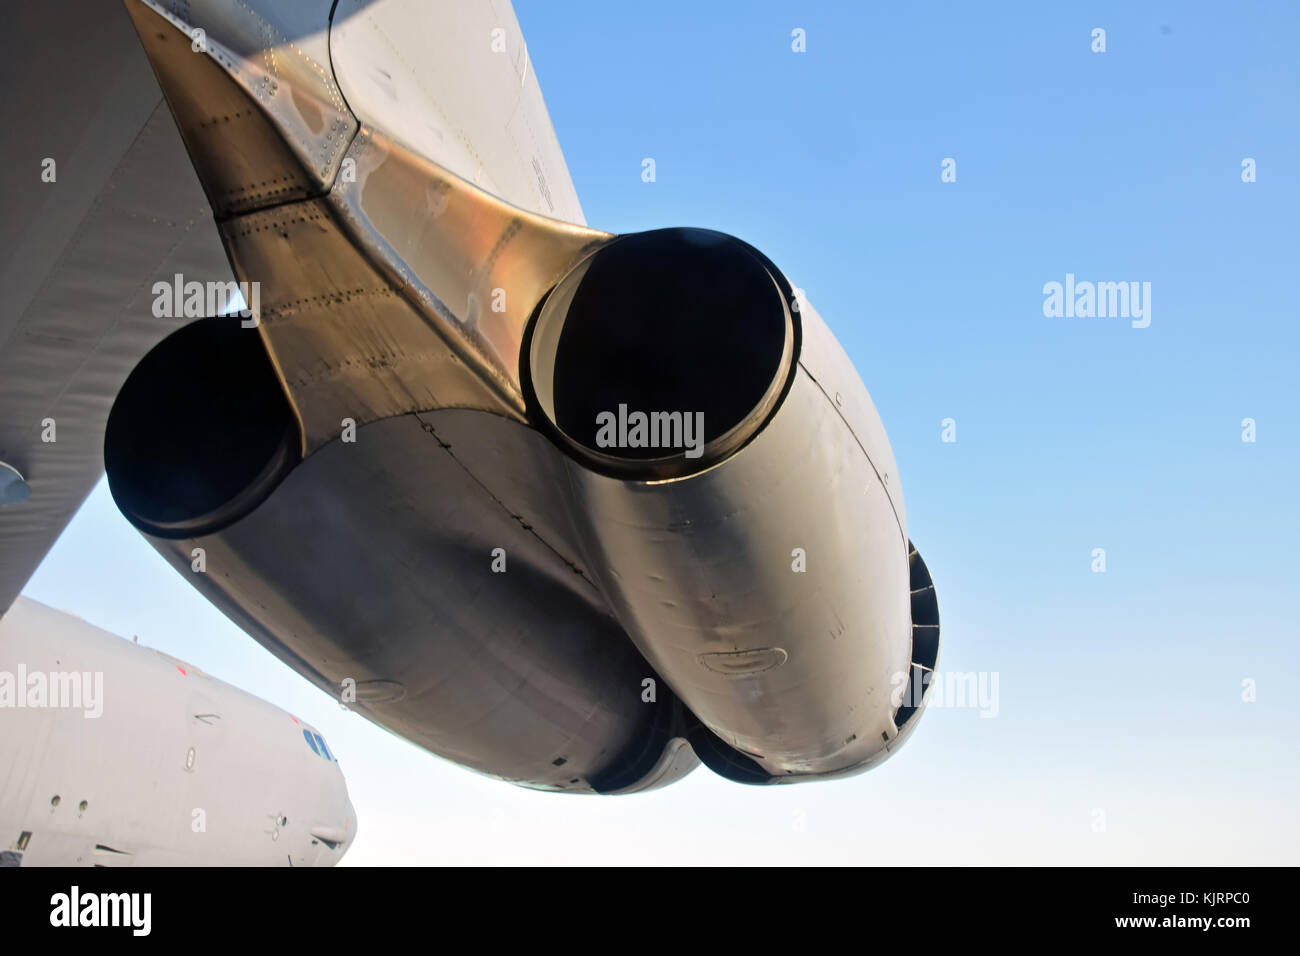 Heavy gomber twin jet engines closeup view - Stock Image